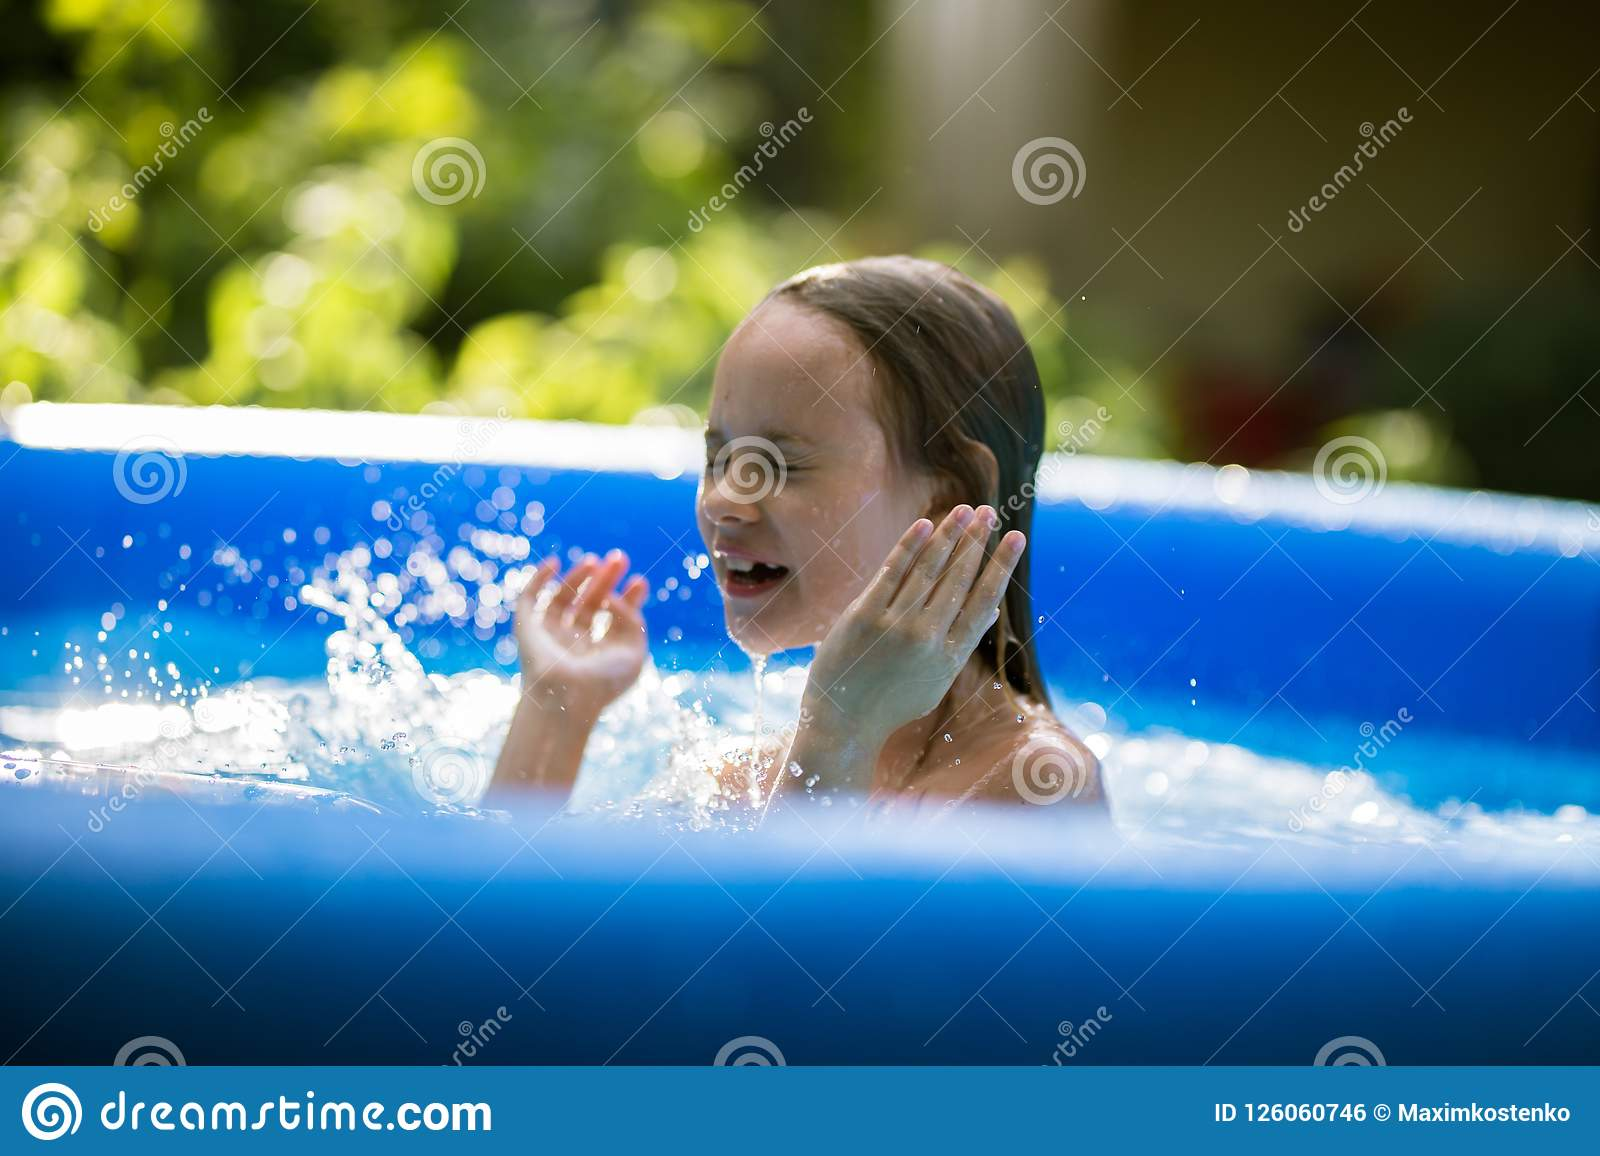 Smiling adorable seven years old girl playing and having fun in inflatable pool